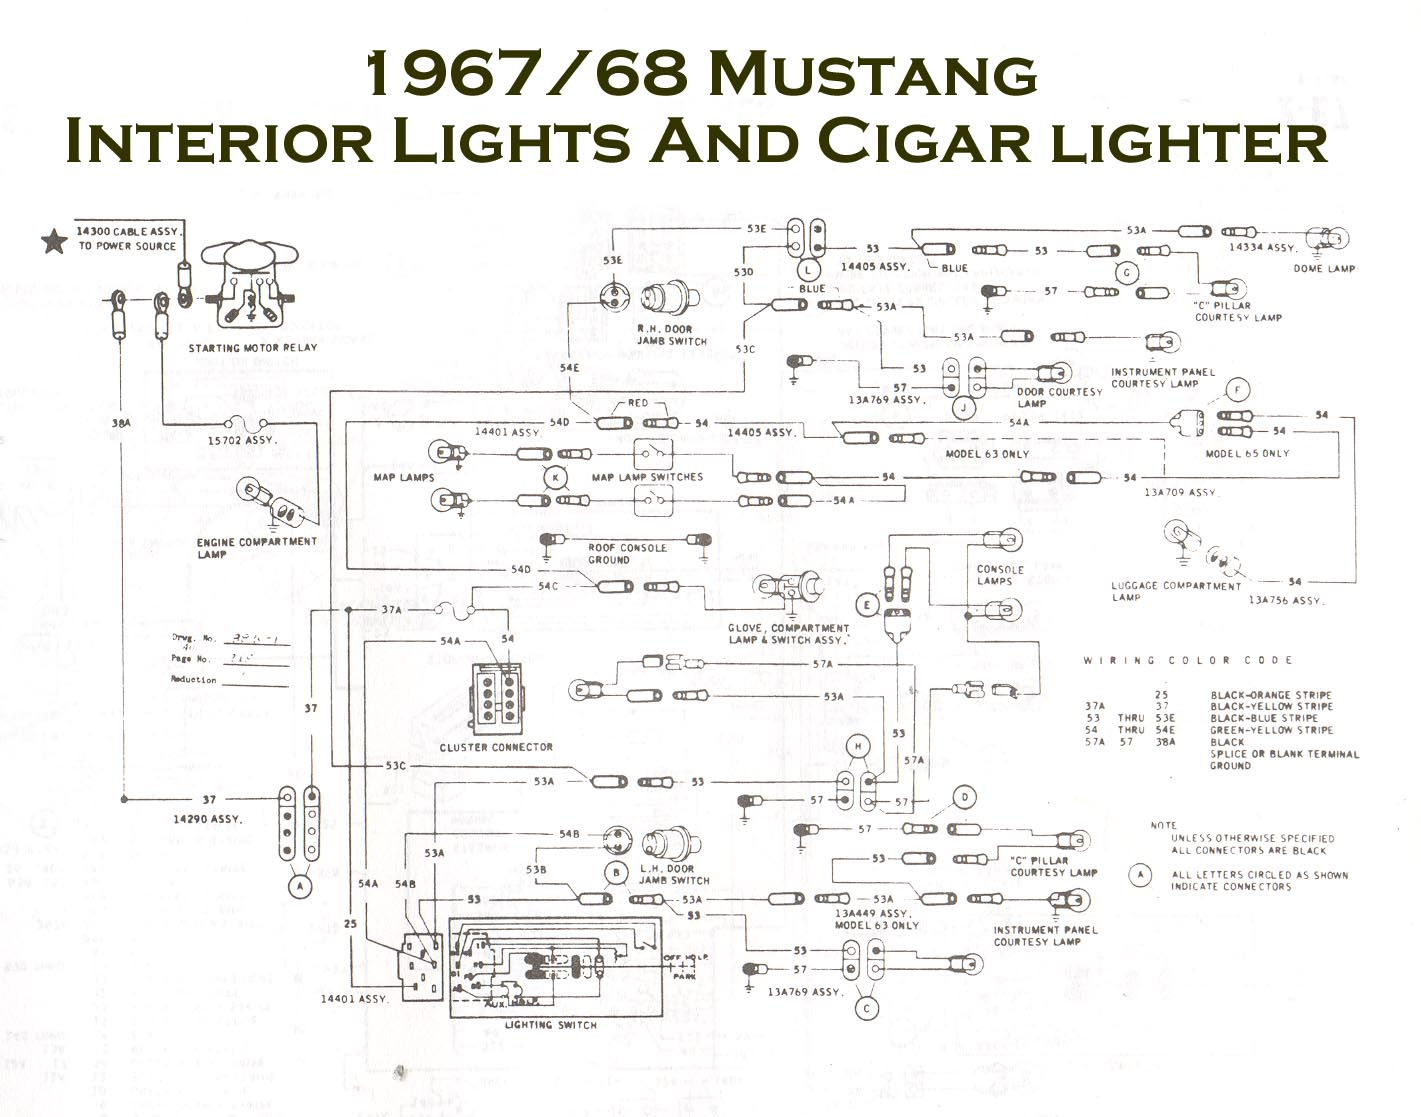 1967 68_console_wiring_diagram vintage mustang wiring diagrams 2000 mustang wiring diagram at virtualis.co